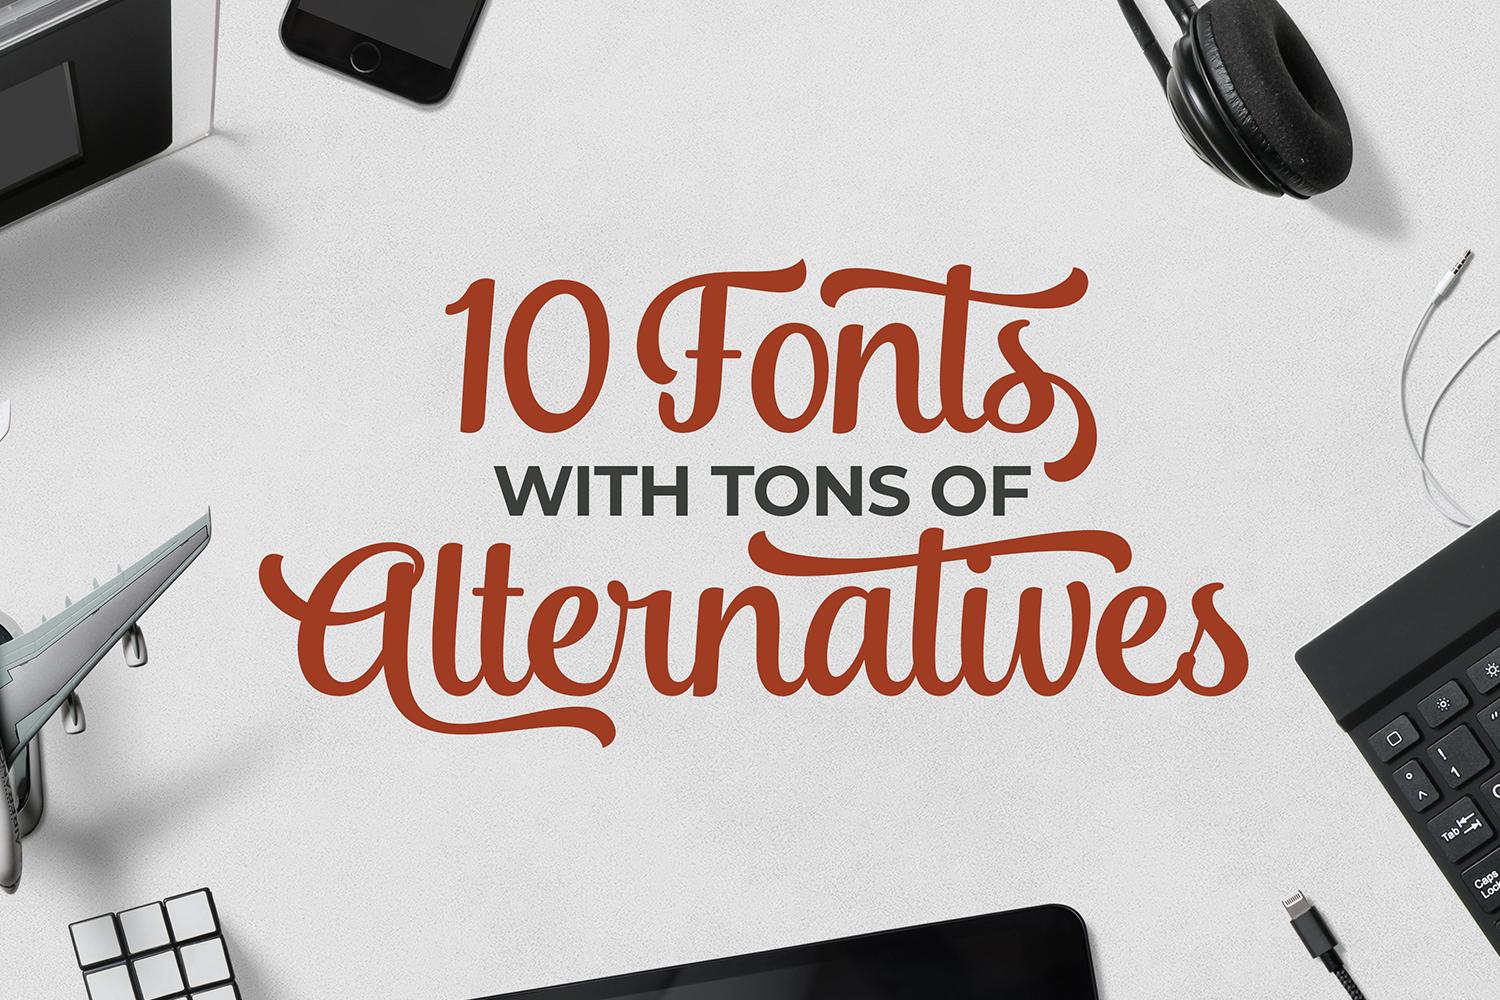 10 Fonts with Tons of Alternatives